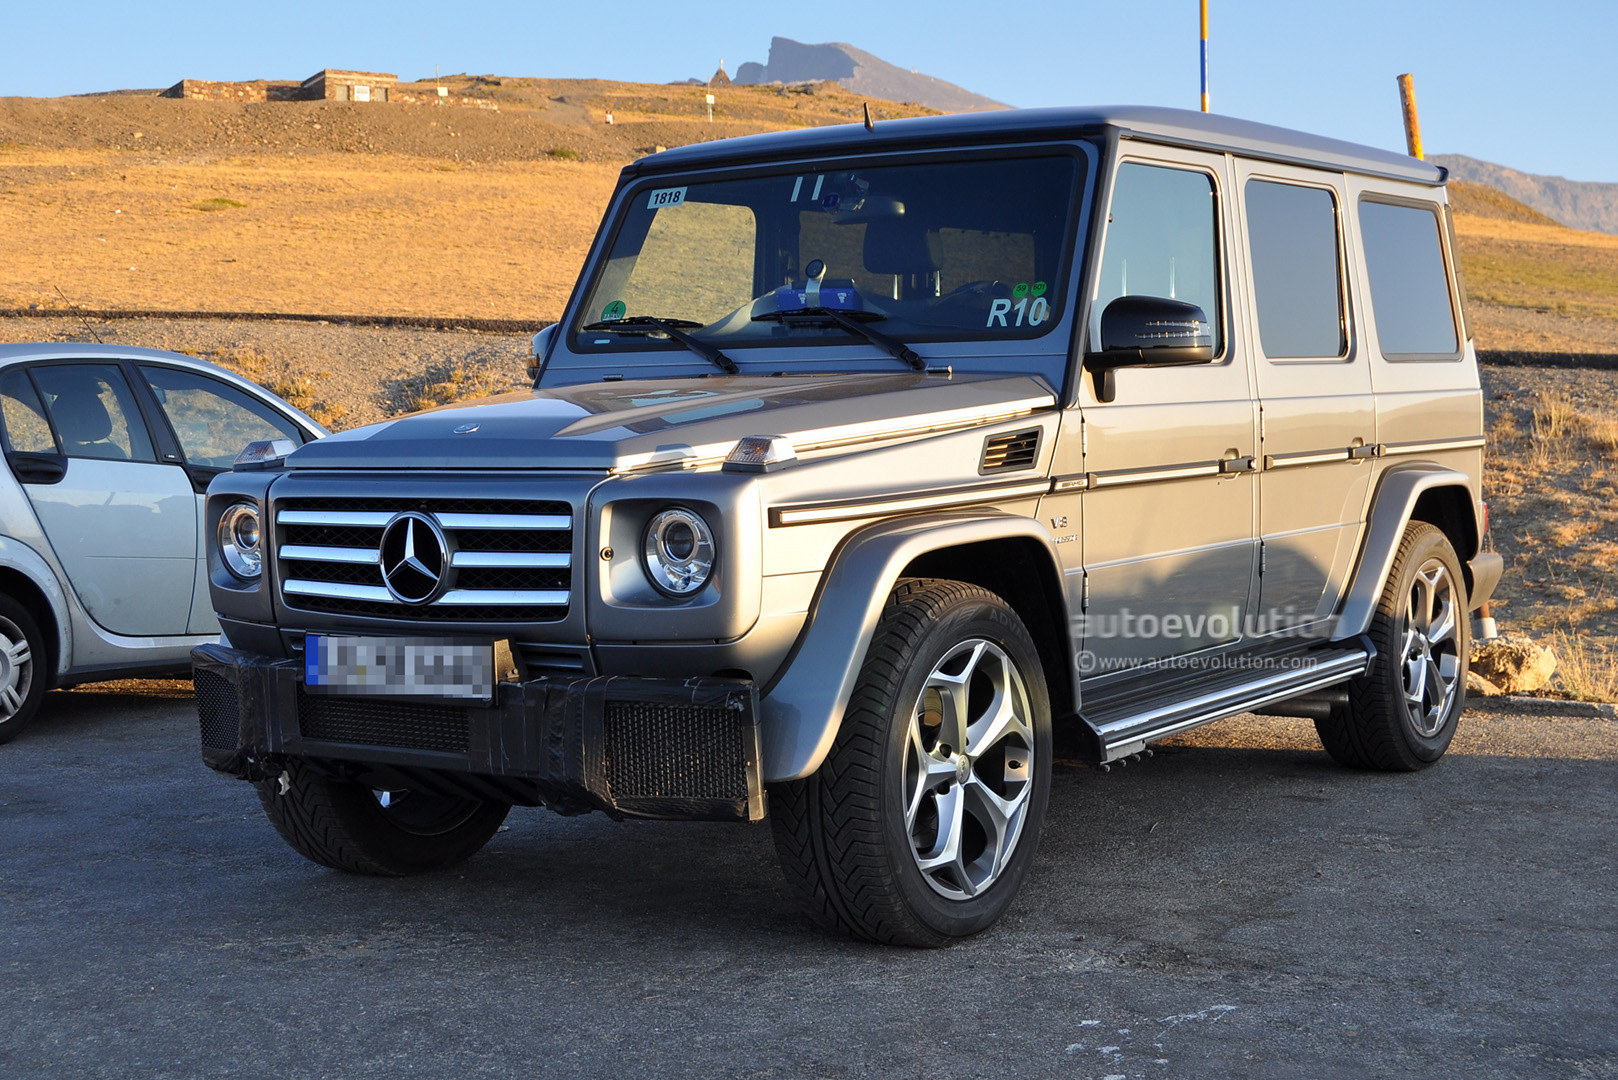 Mercedes benz g65 amg specs and pricing leaked exclusive for Mercedes benz g65